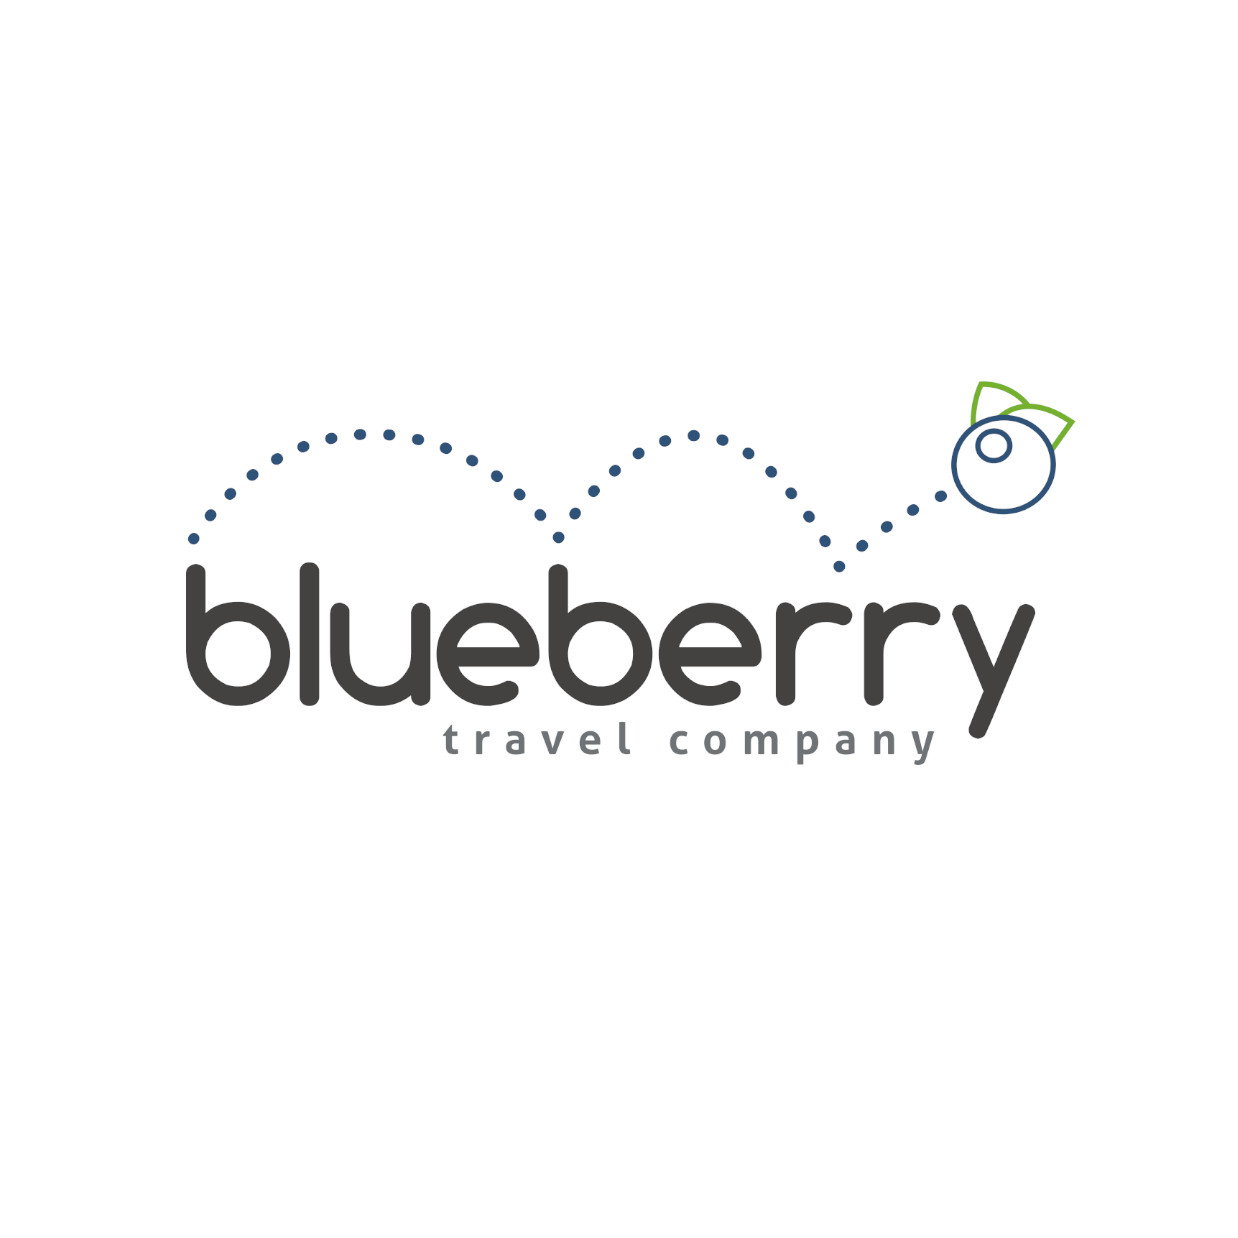 blueberry travel images